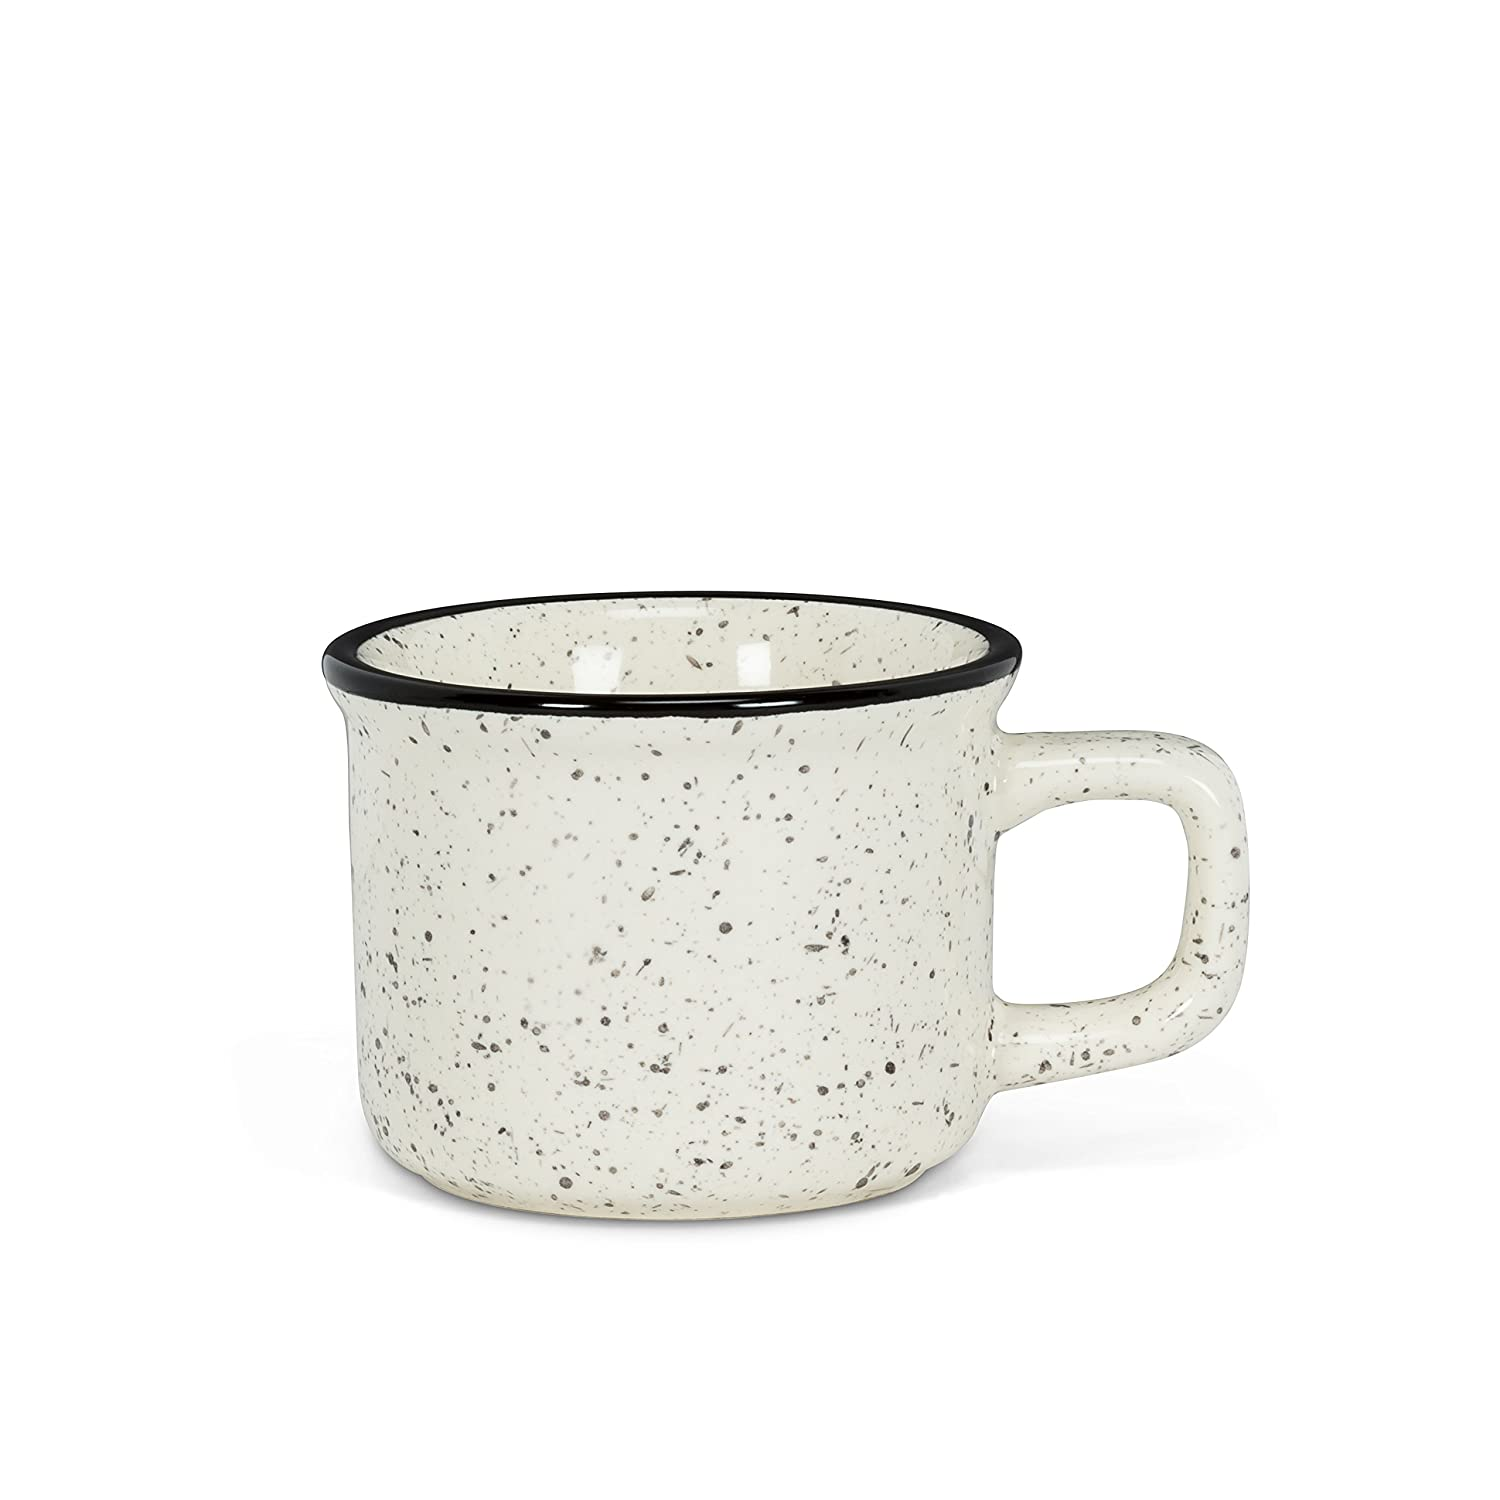 Abbott Collection 1227-CAMP-ESP Espresso Cup 2.5 In Diameter Ivory and Black